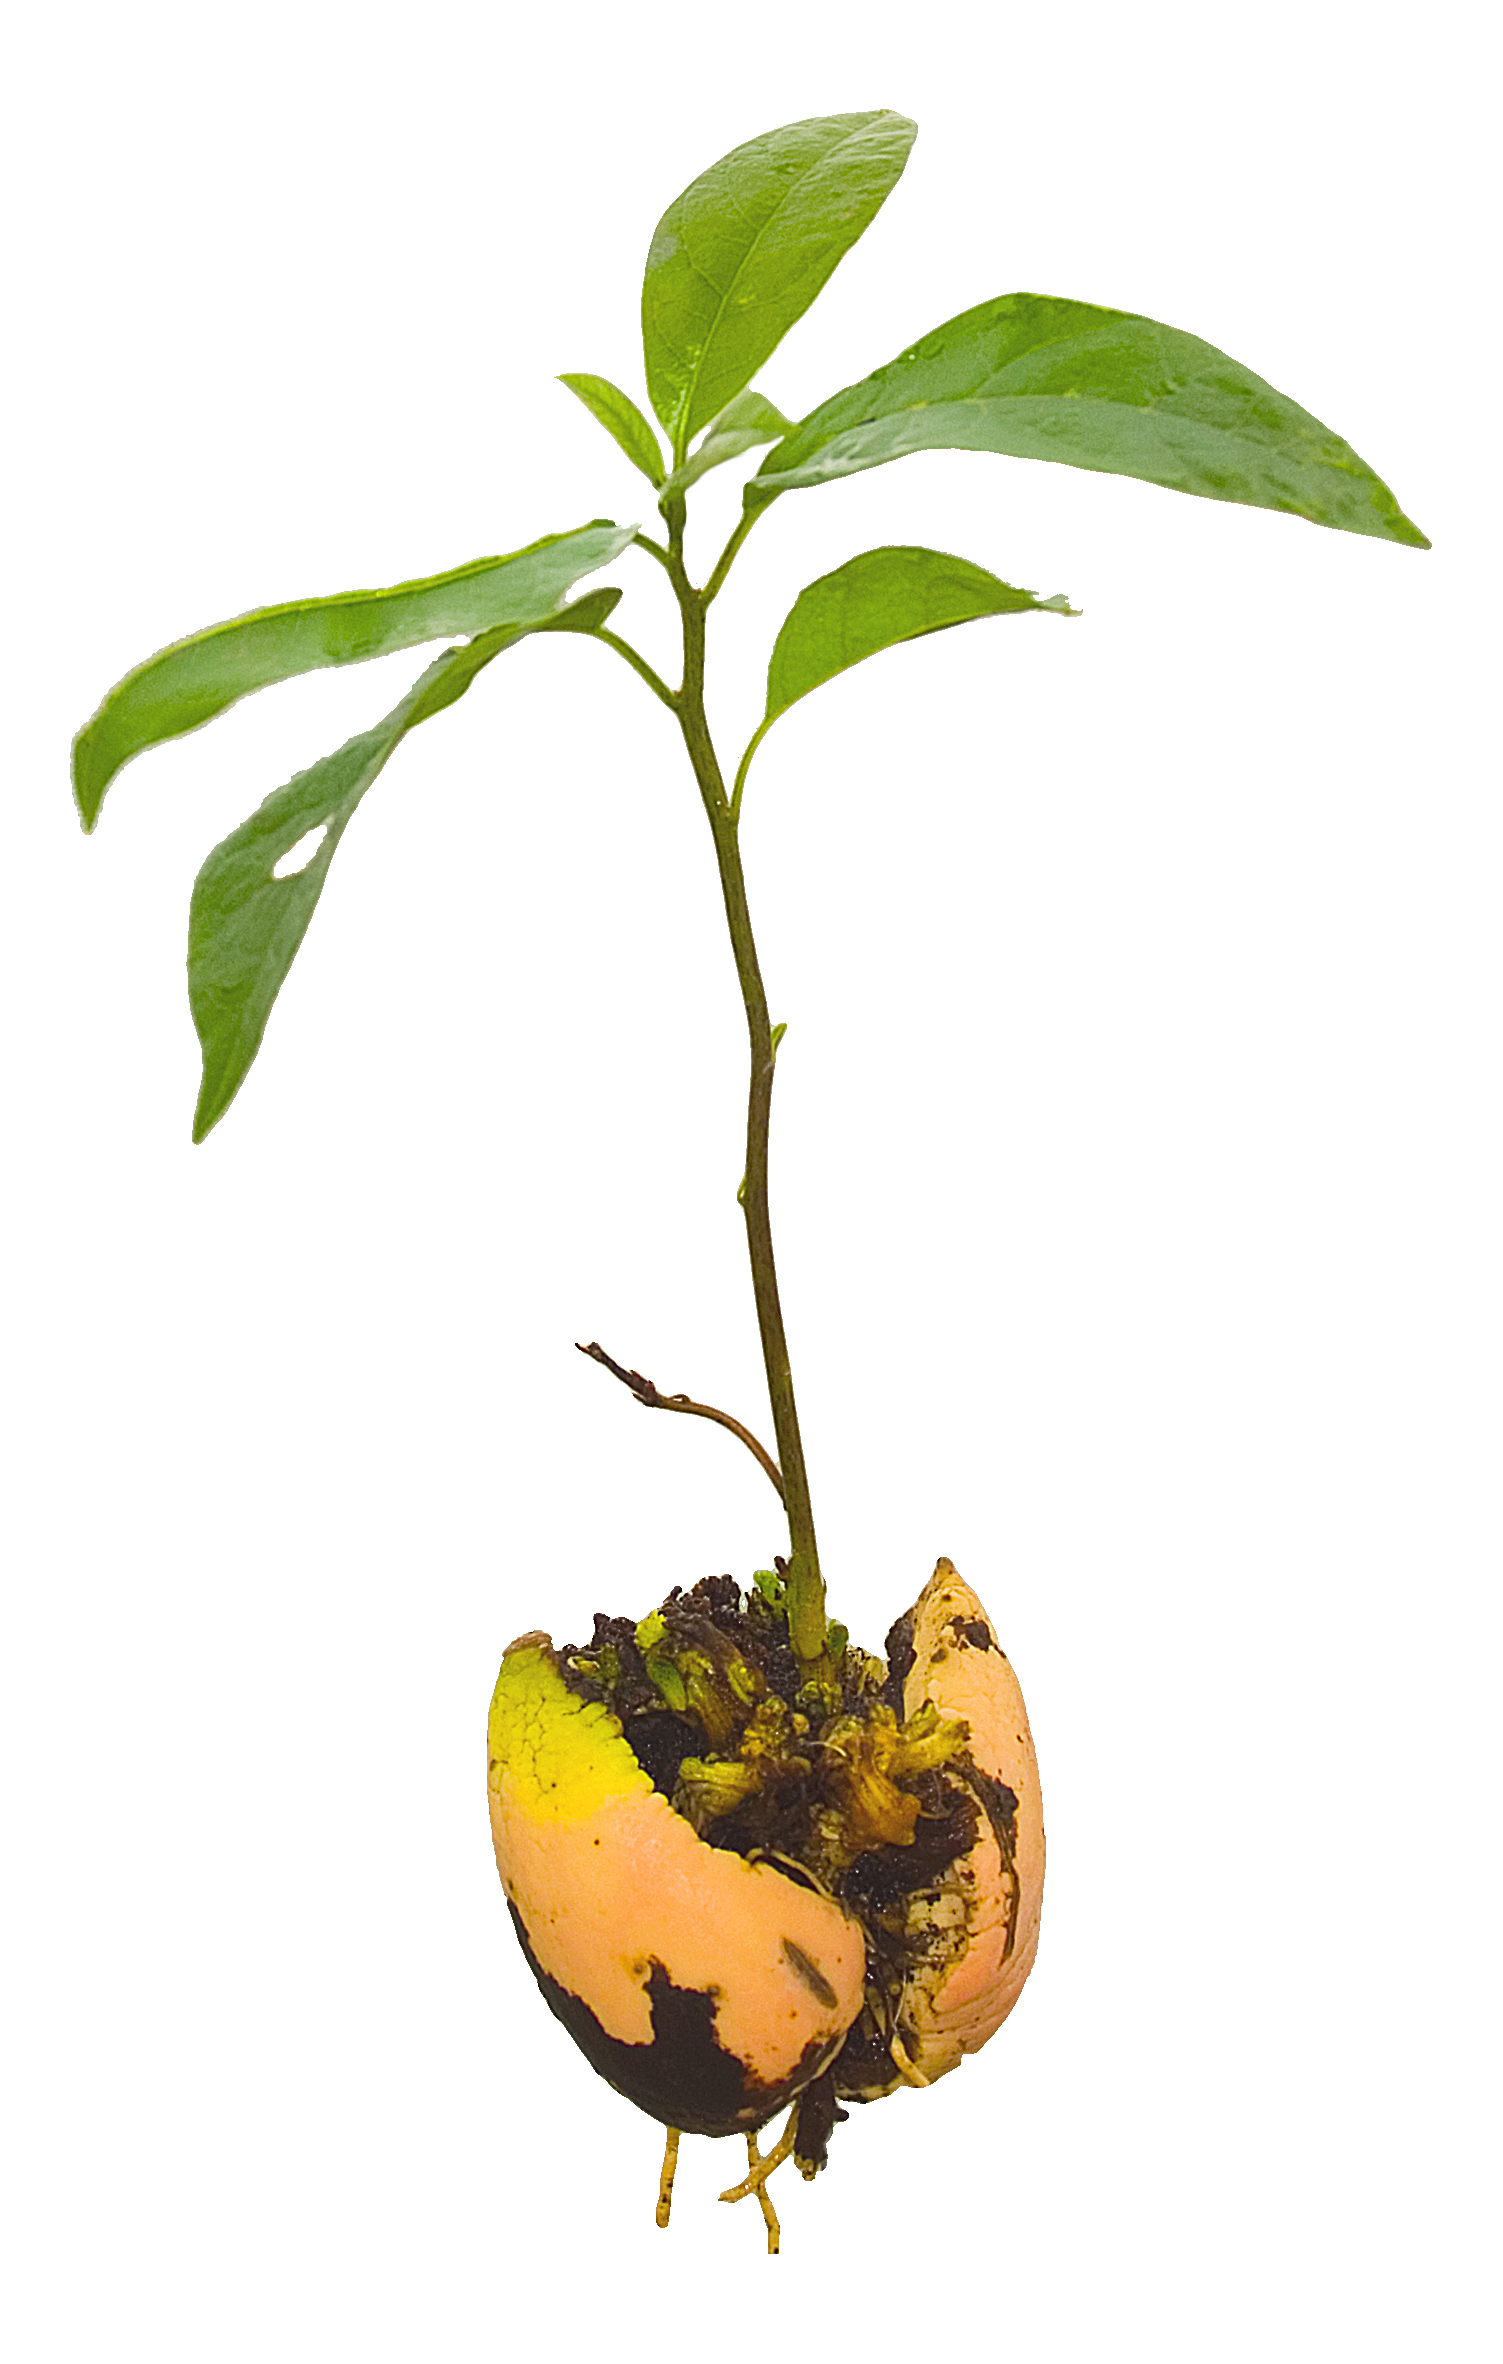 Avocado plant seedling